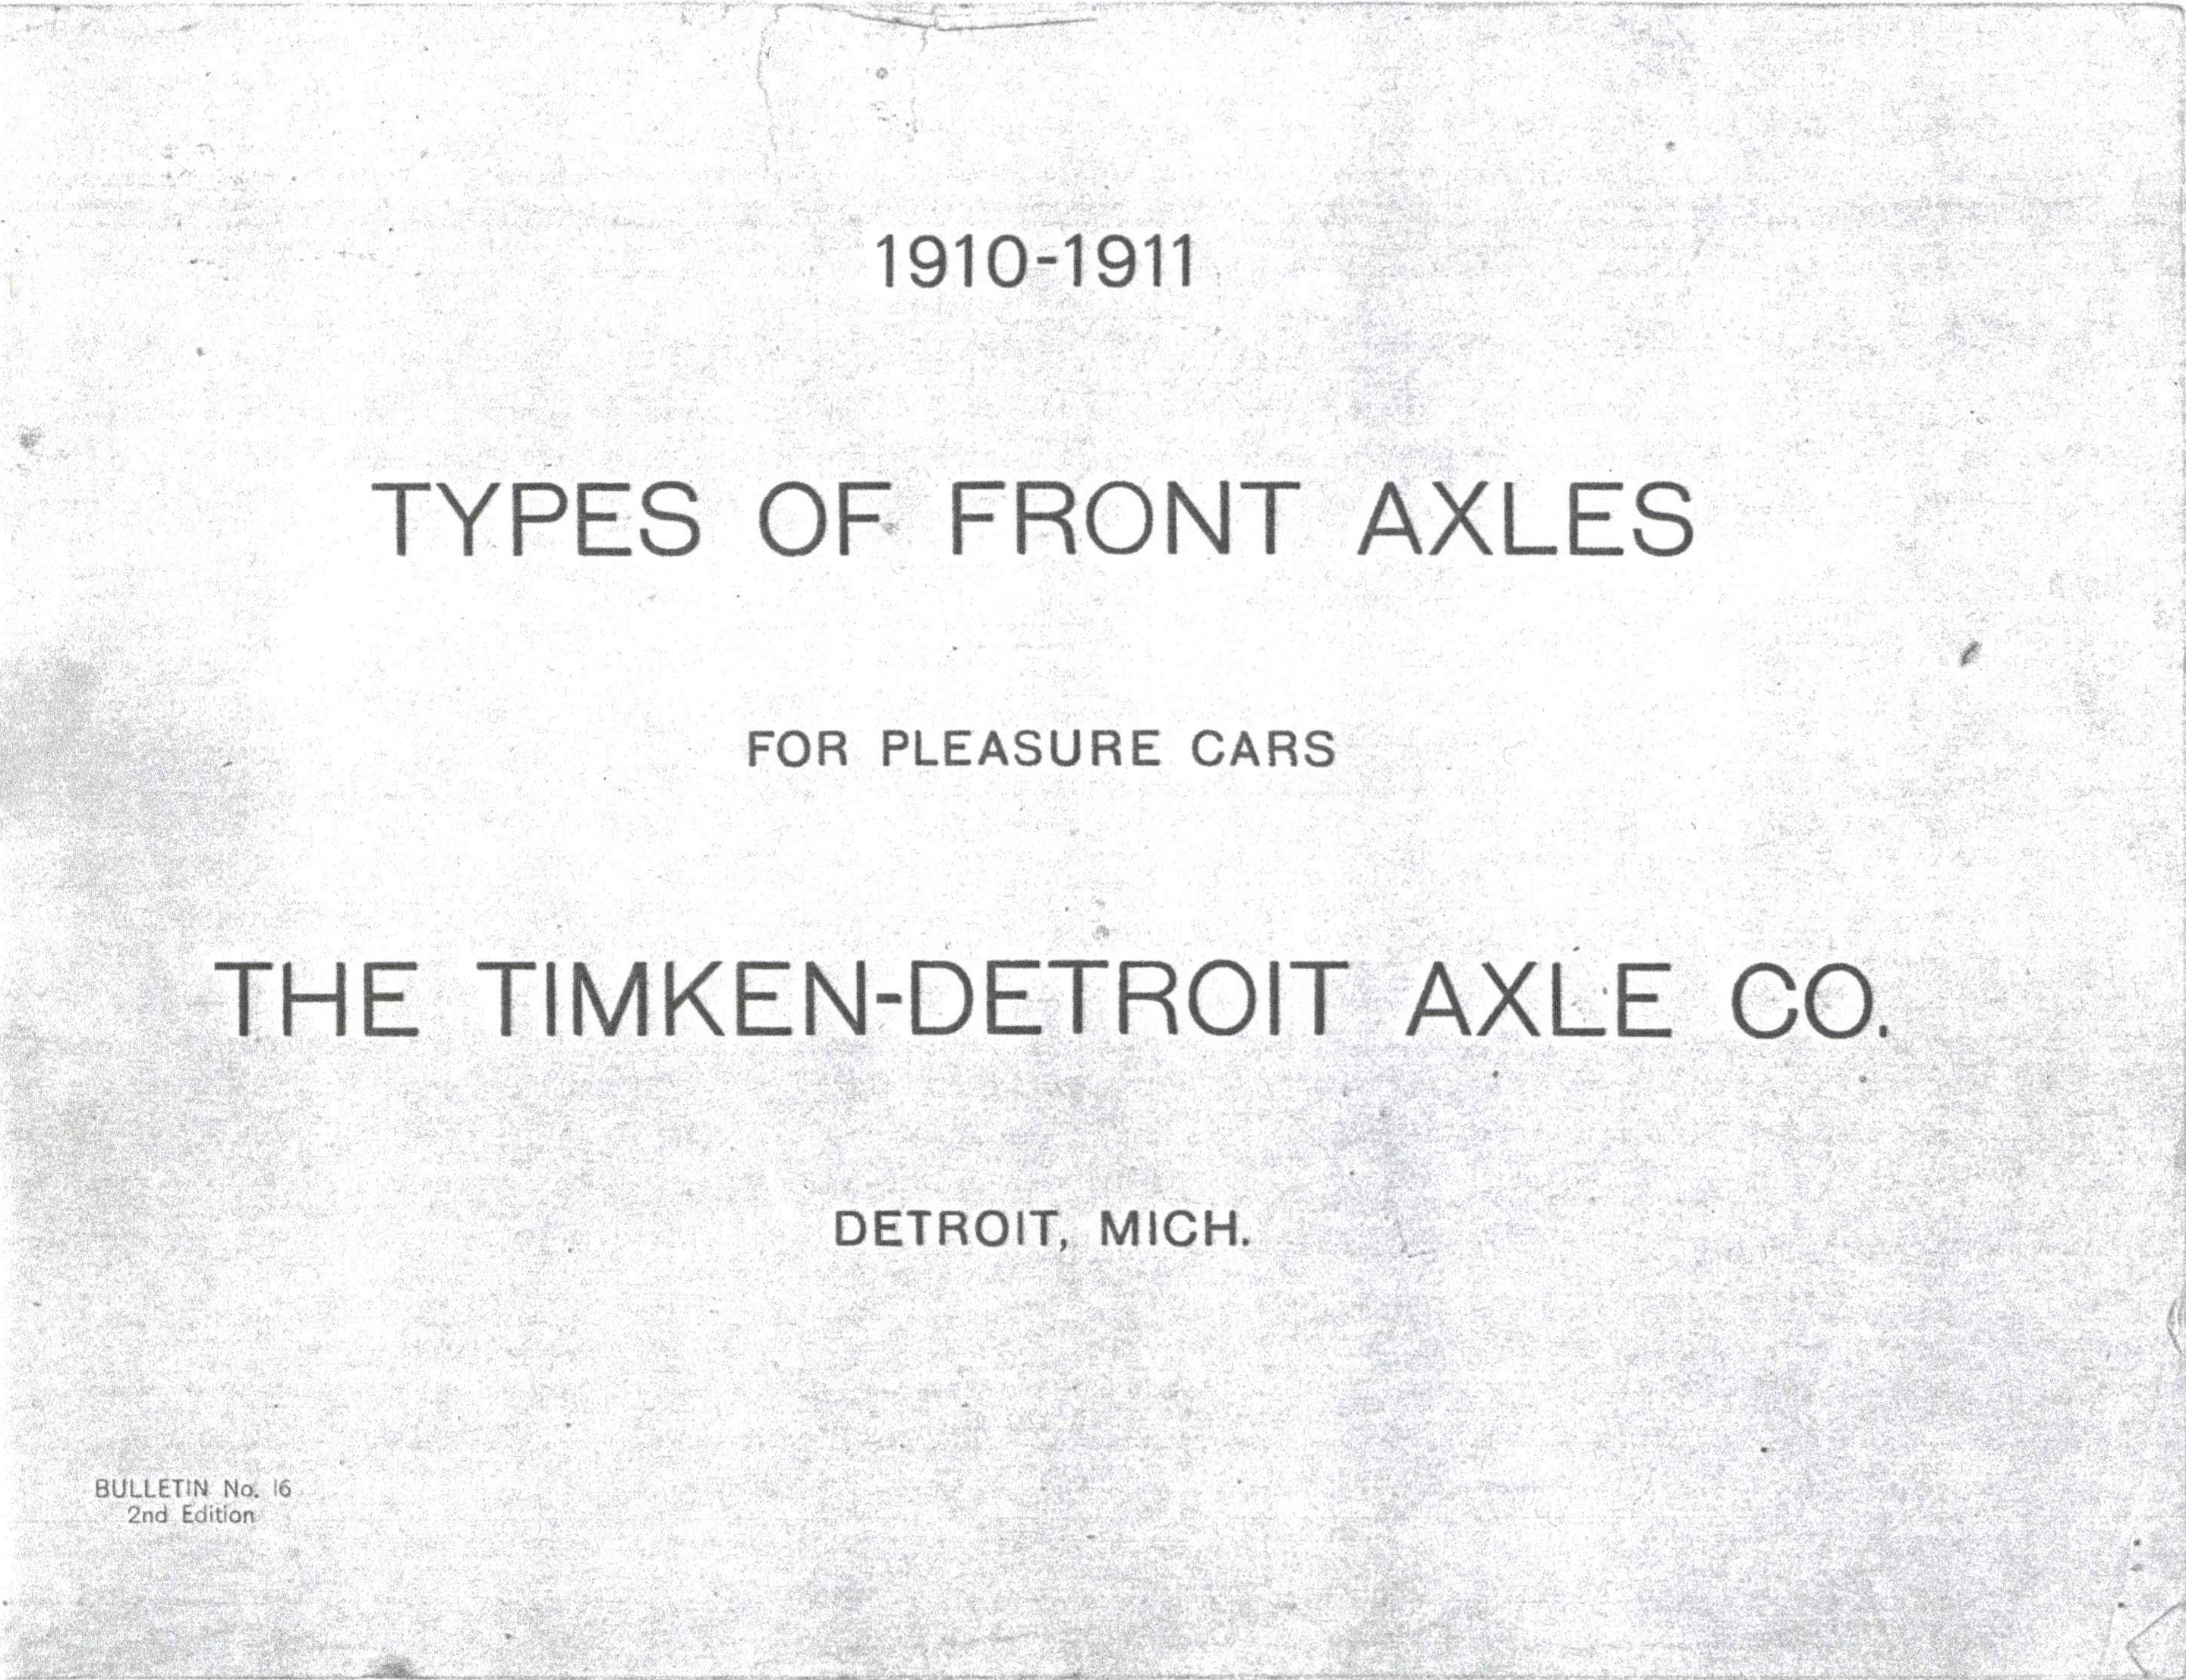 1910-1911 TIMKEN-DETROIT AXLE CO TYPES OF FRONT AXLES FOR